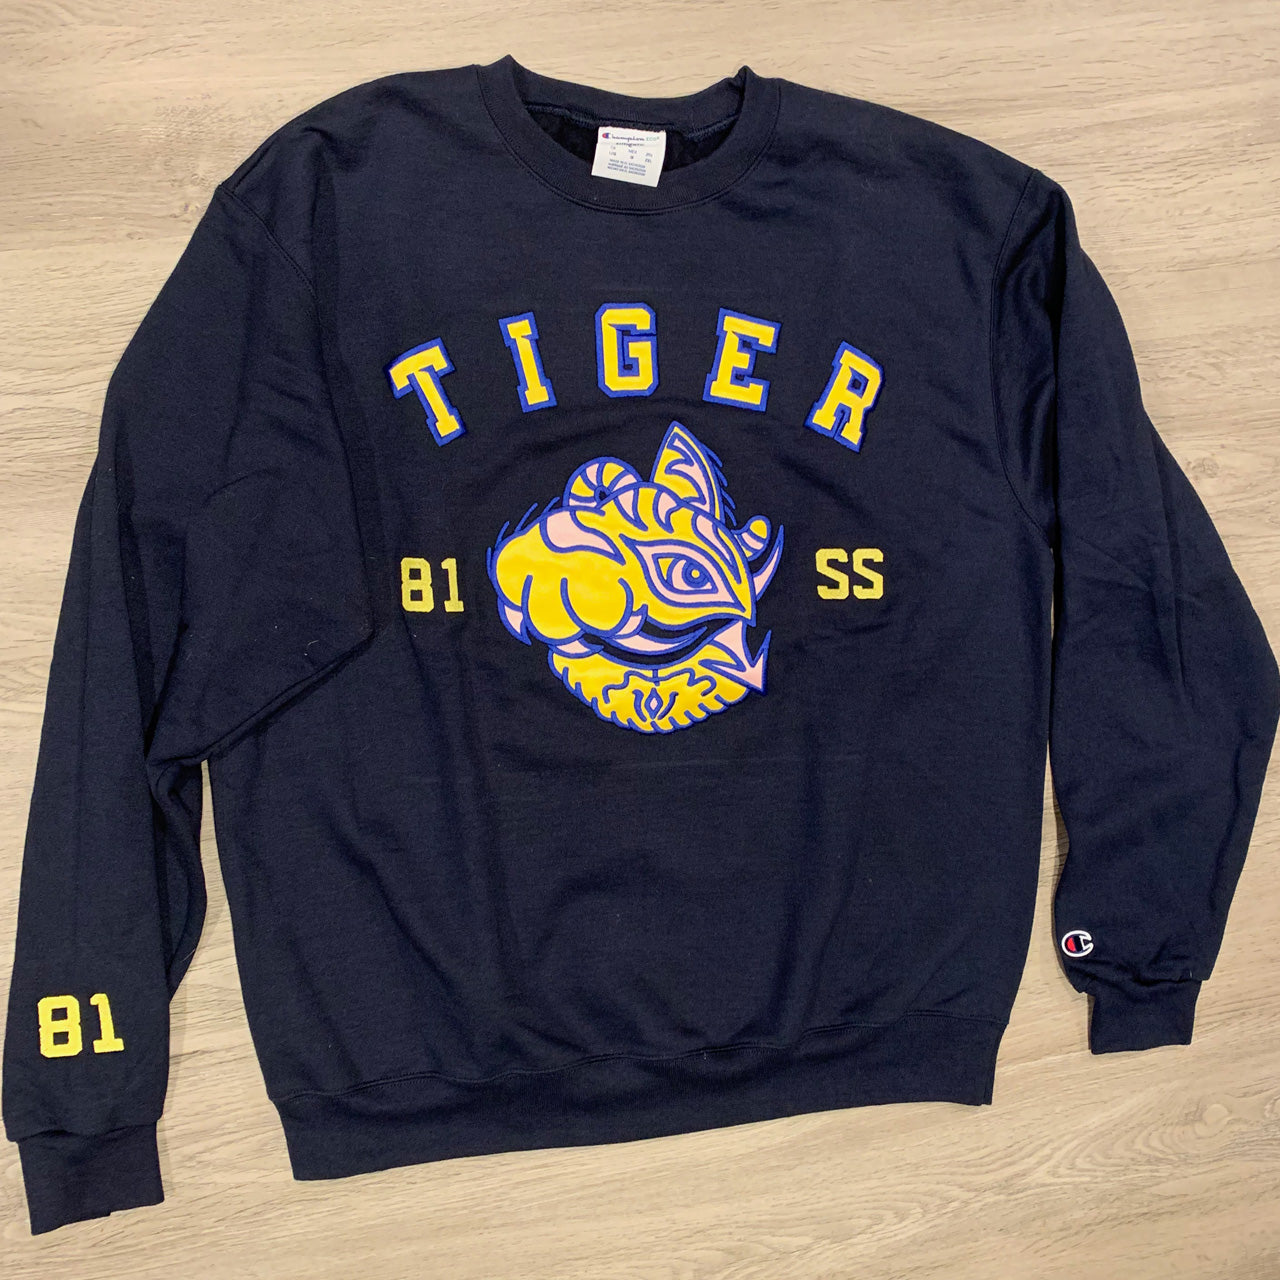 *PRE-ORDER* Team Tiger Crewneck Sweatshirt